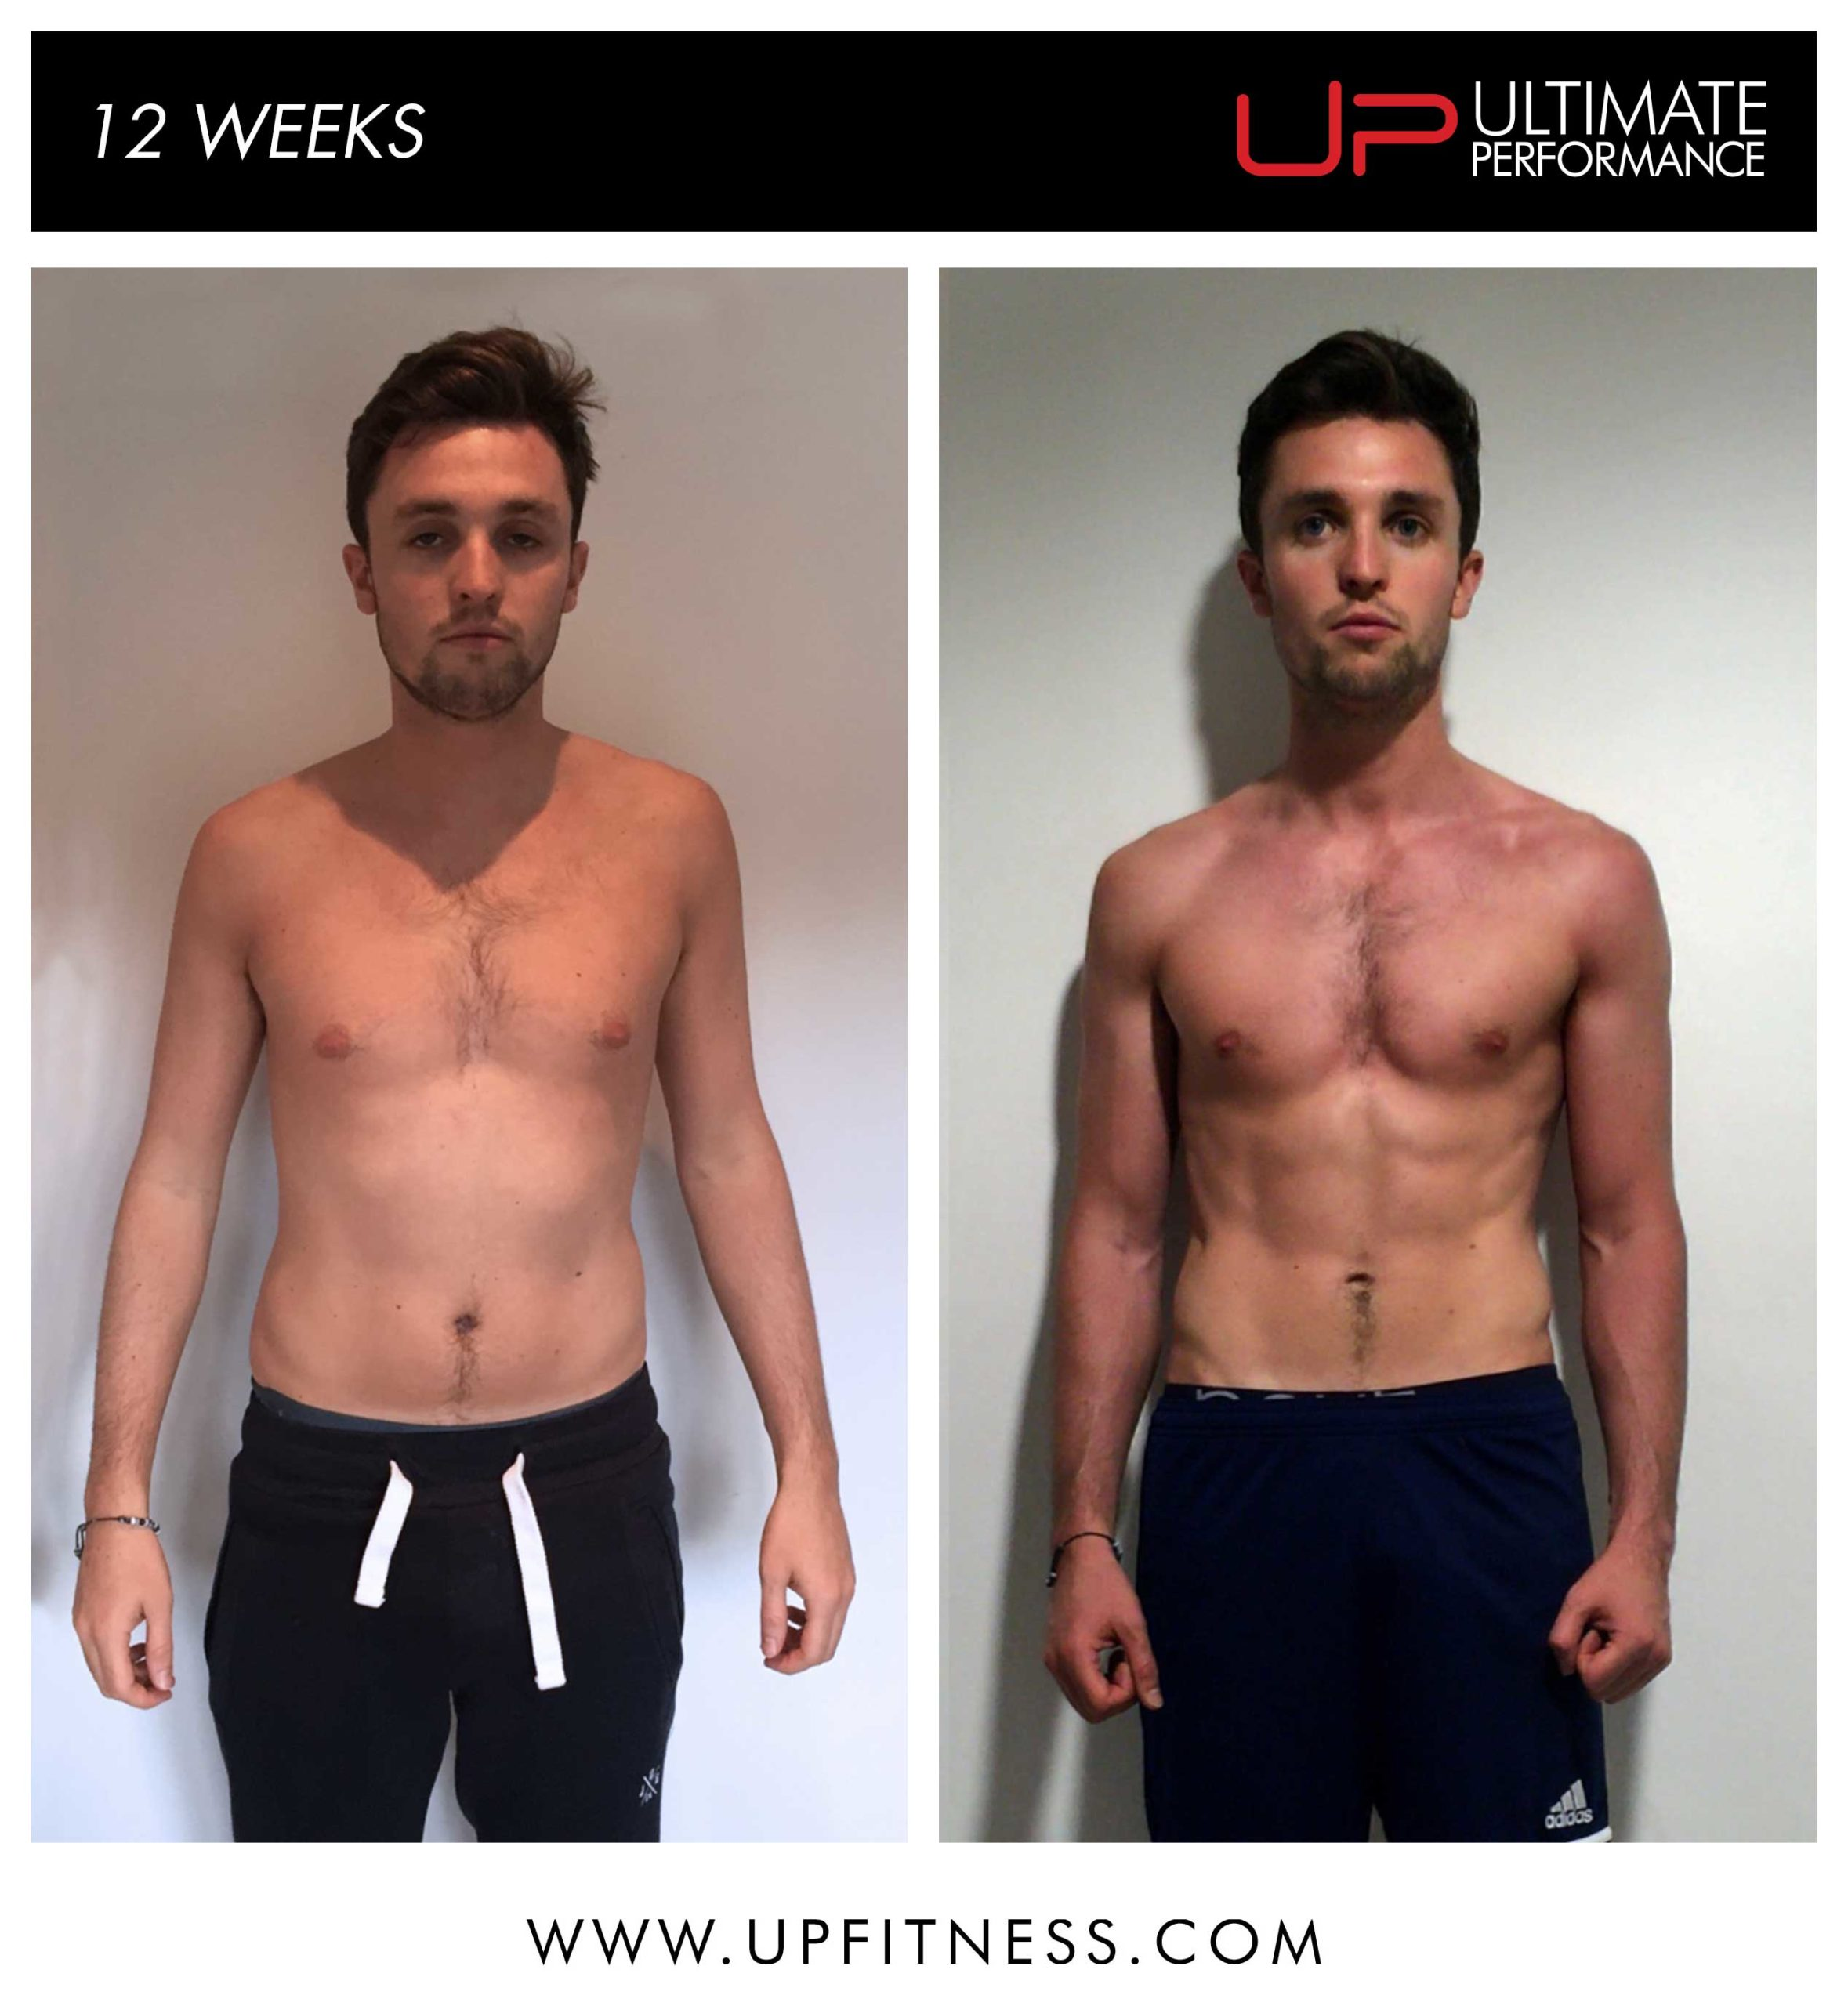 Fabian 12 week transformation